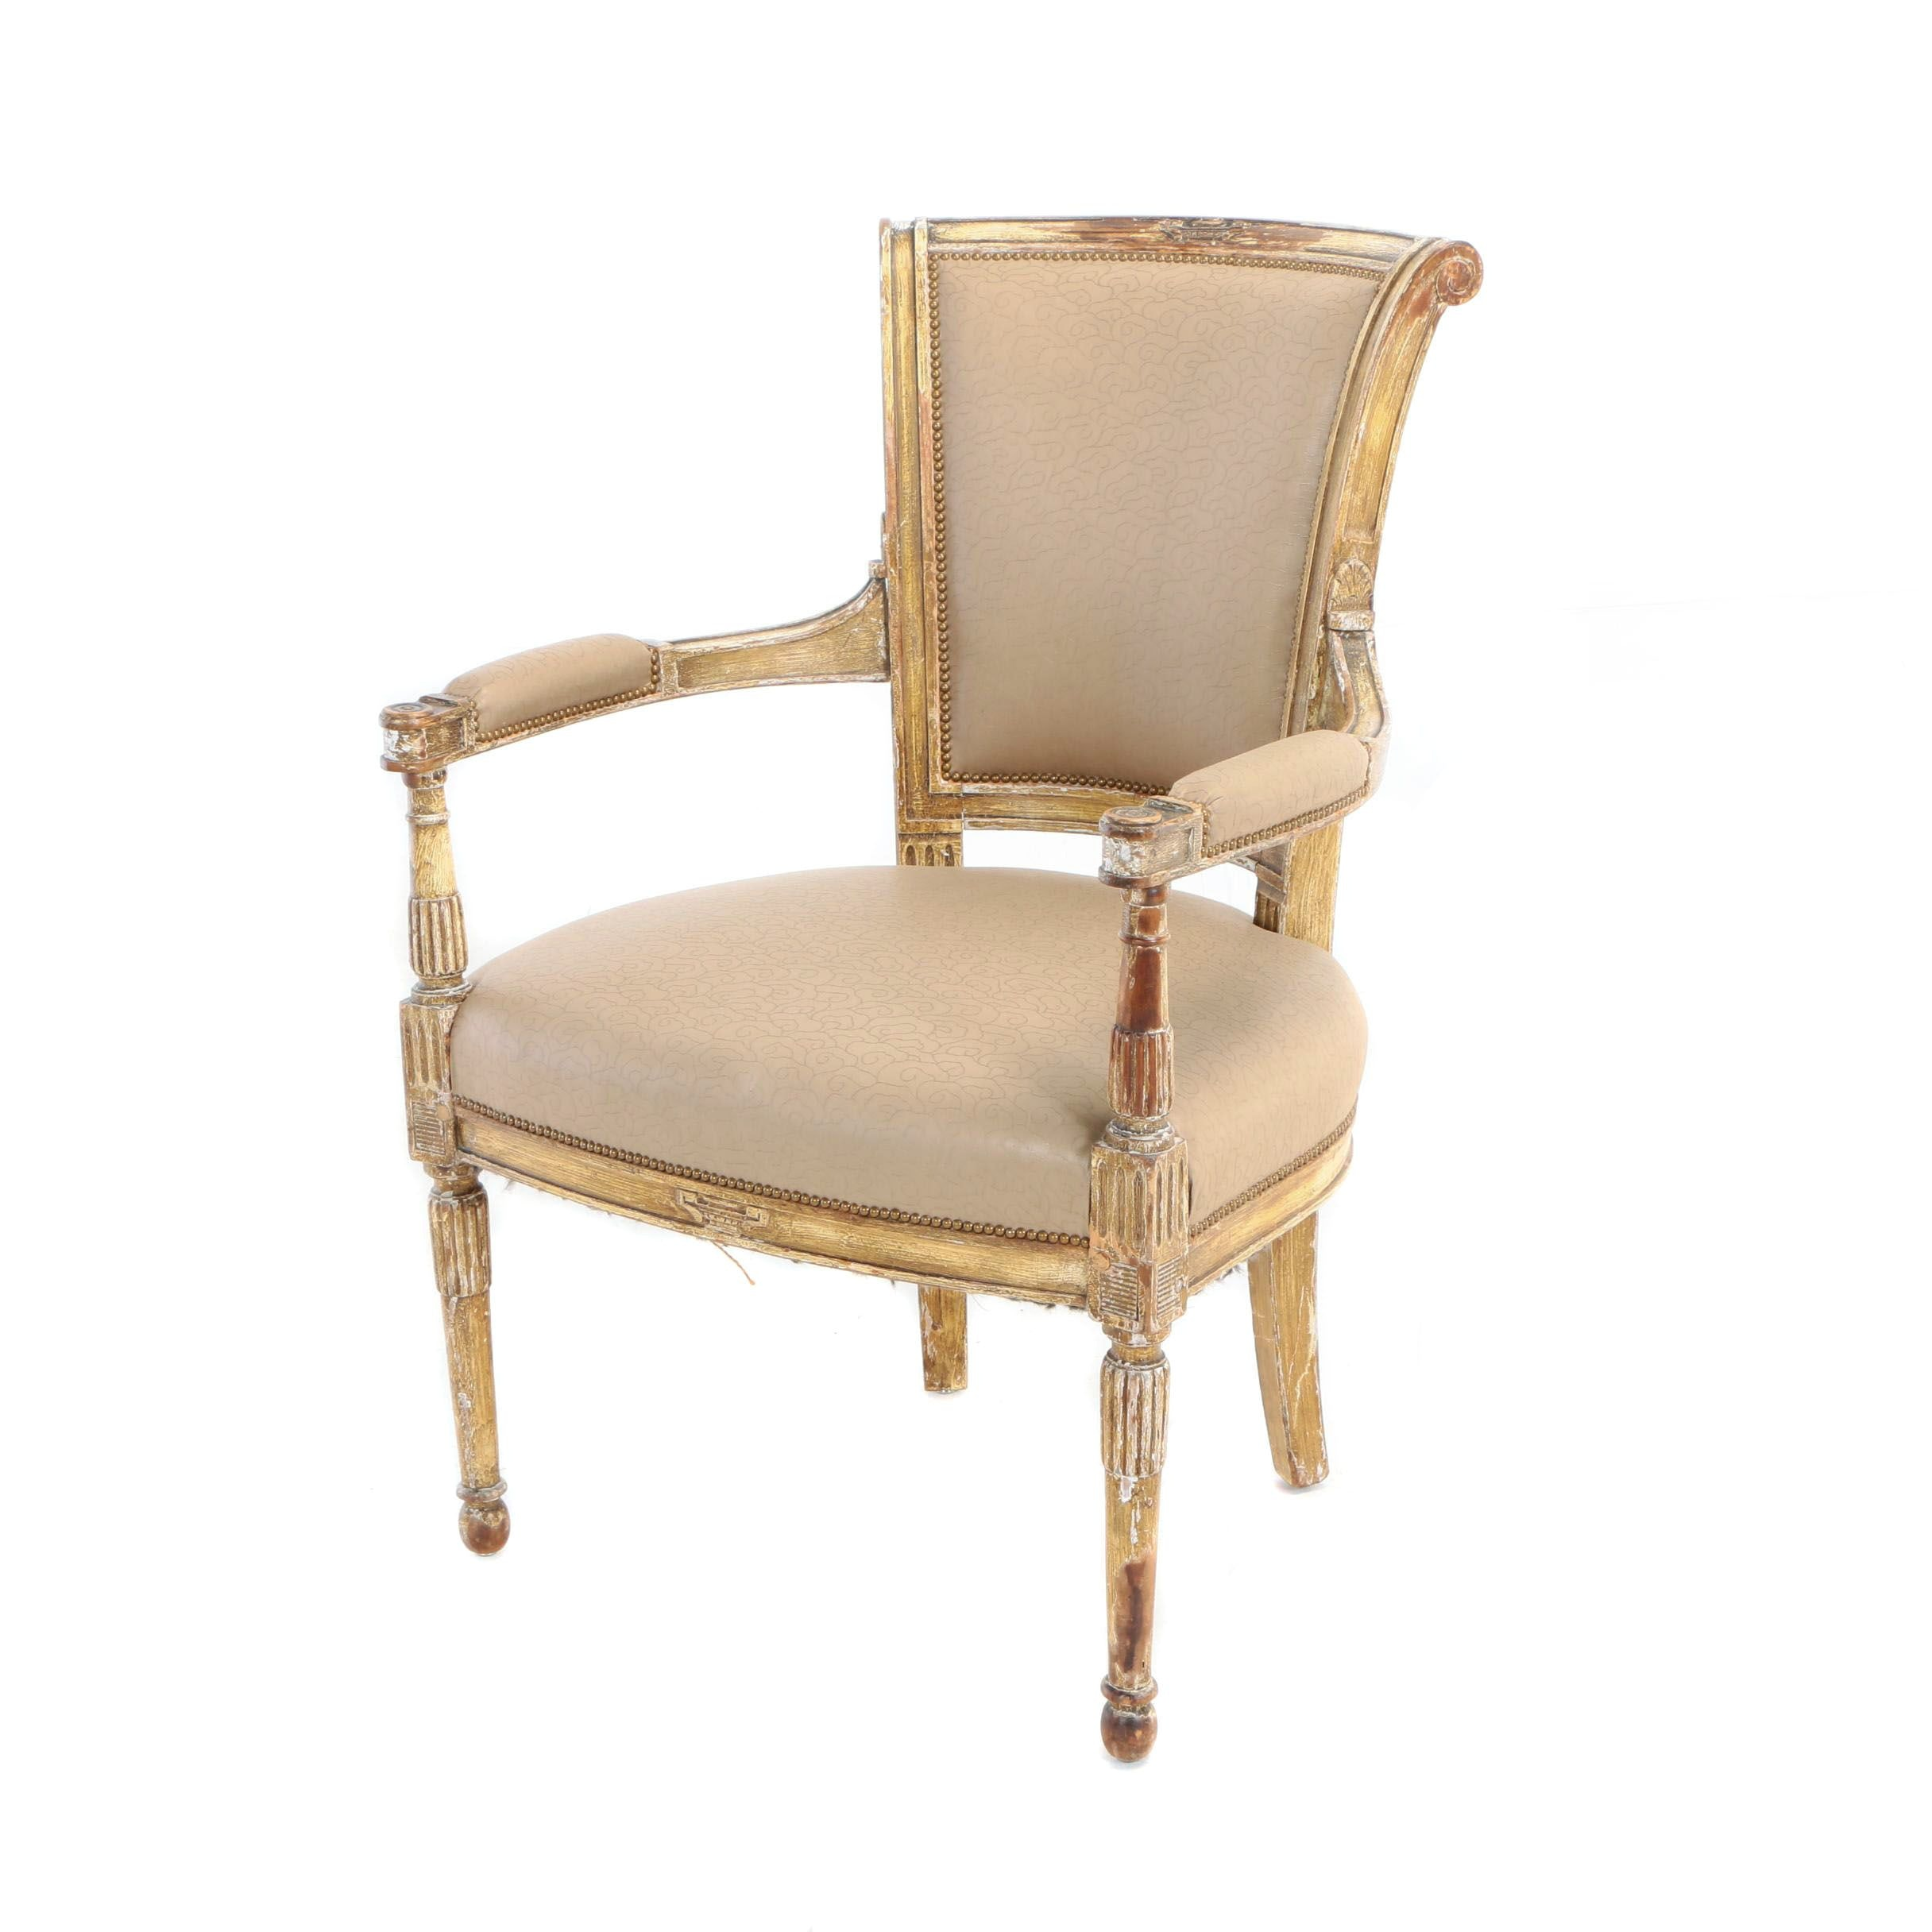 Louis XVI Style Painted and Carved Beech Fauteuil, Late 19th/Early 20th Century